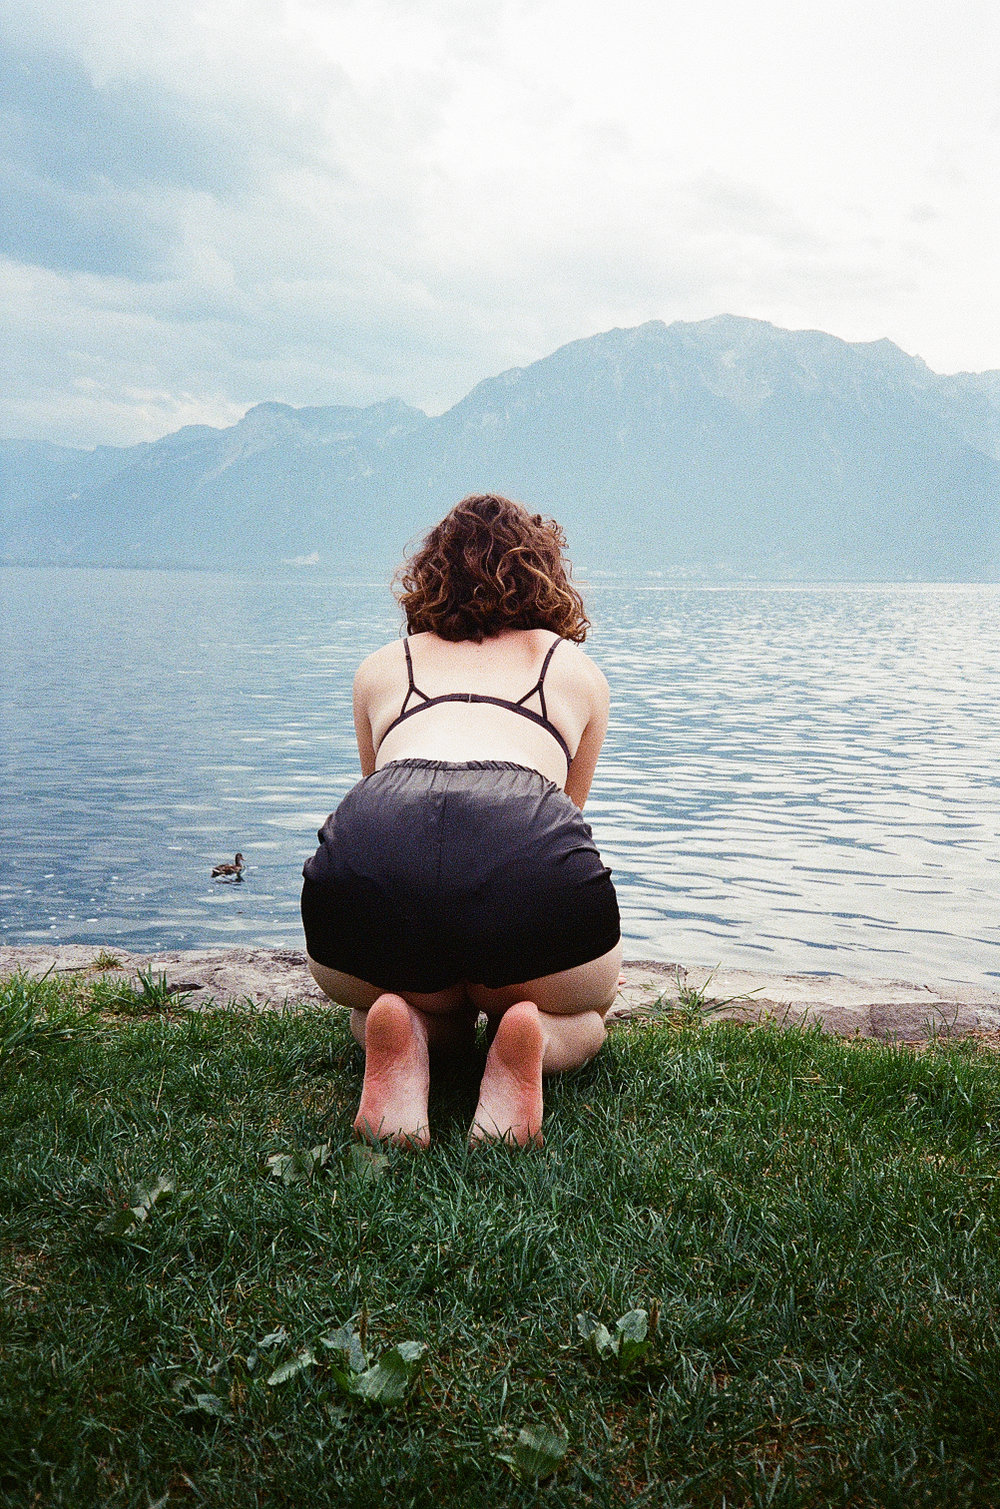 Noelle, Lake Geneva, Switzerland